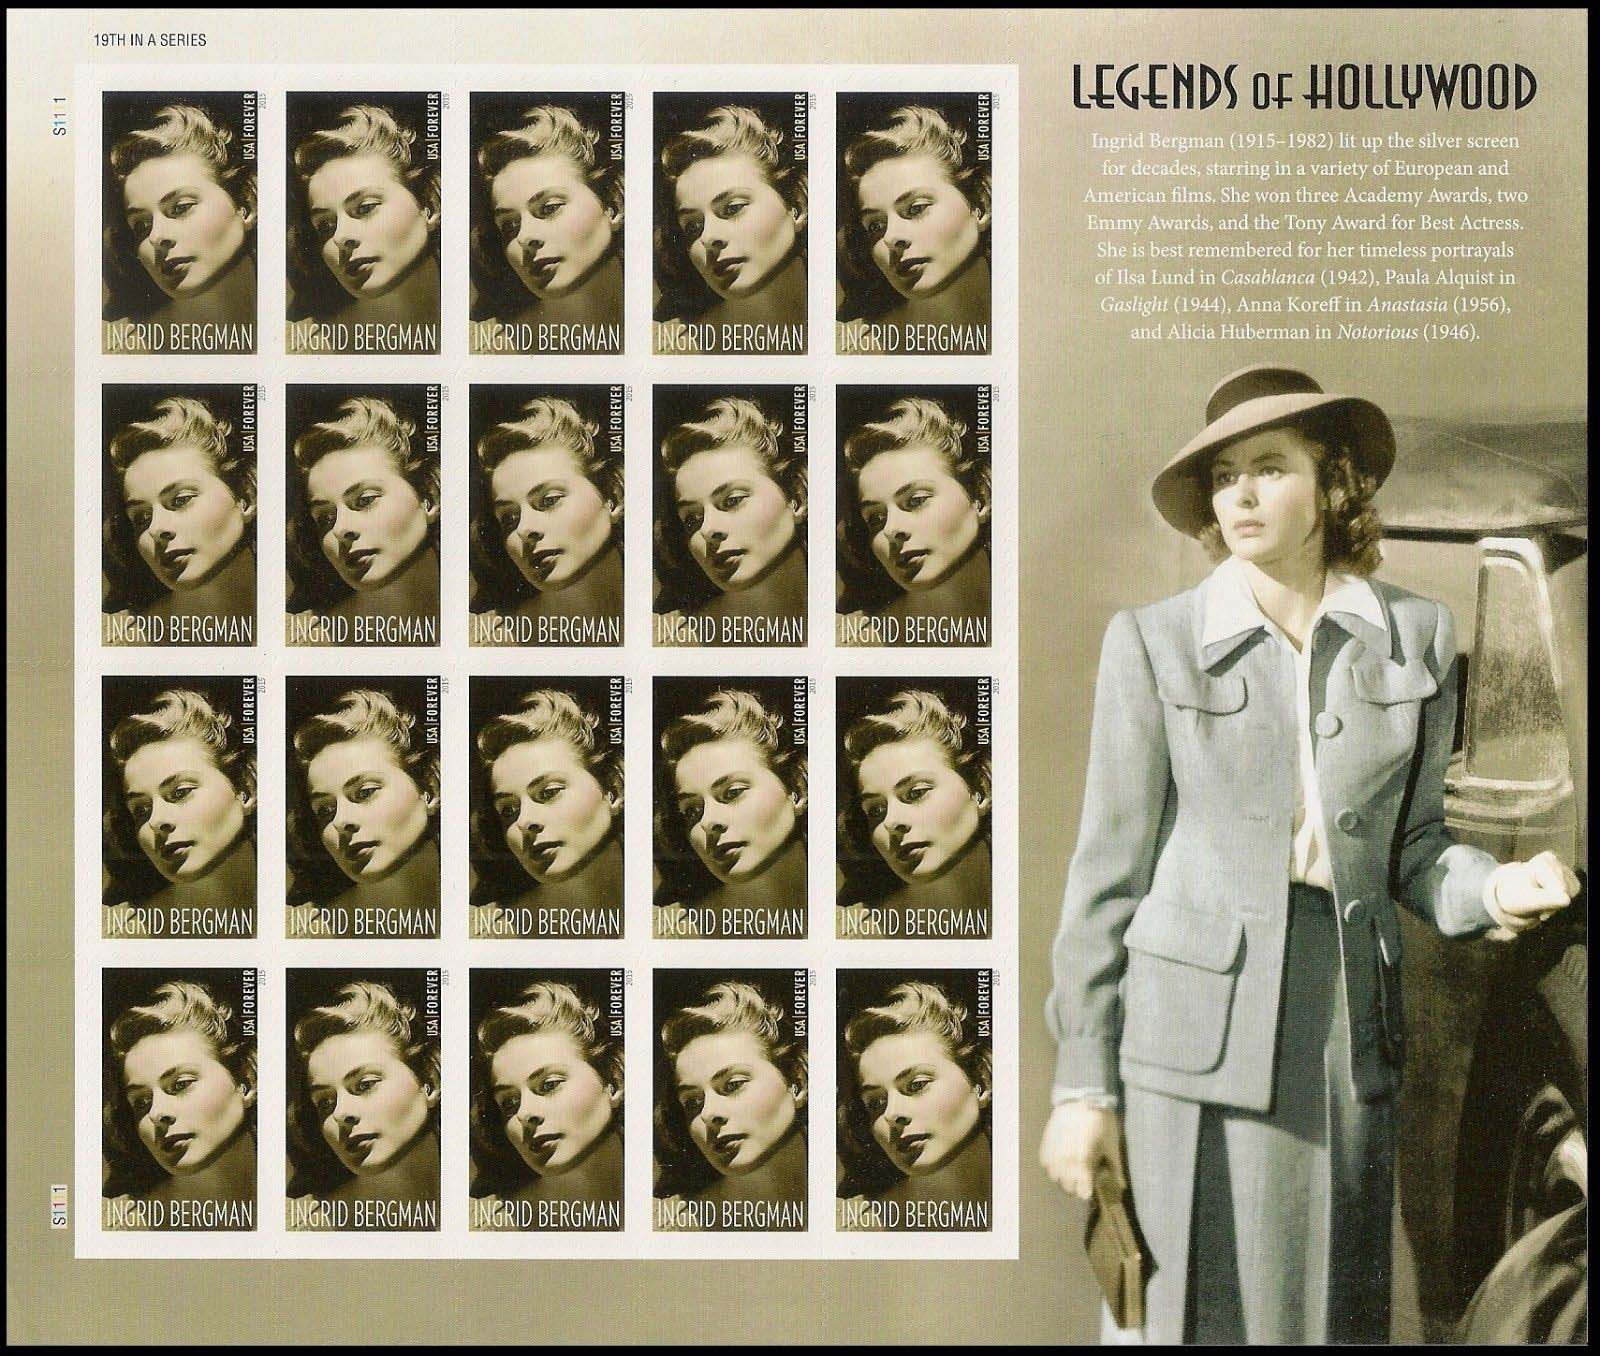 Scott #5012, Forever Sheet of 20, Ingrid Bergman